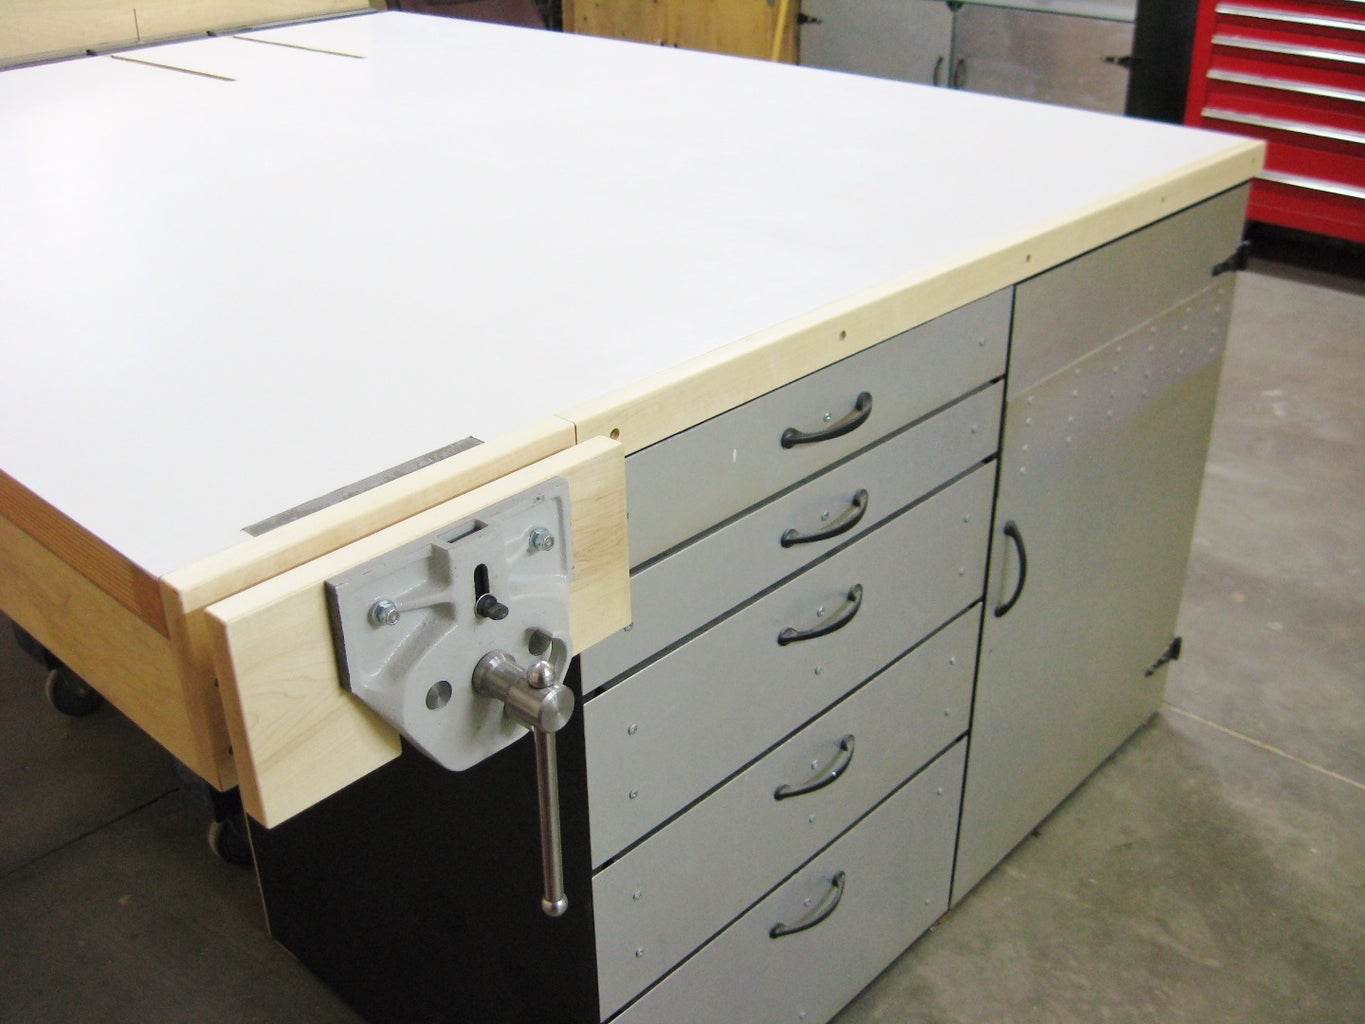 Part 1, Super-mega-ultra-deluxe Outfeed Worktable